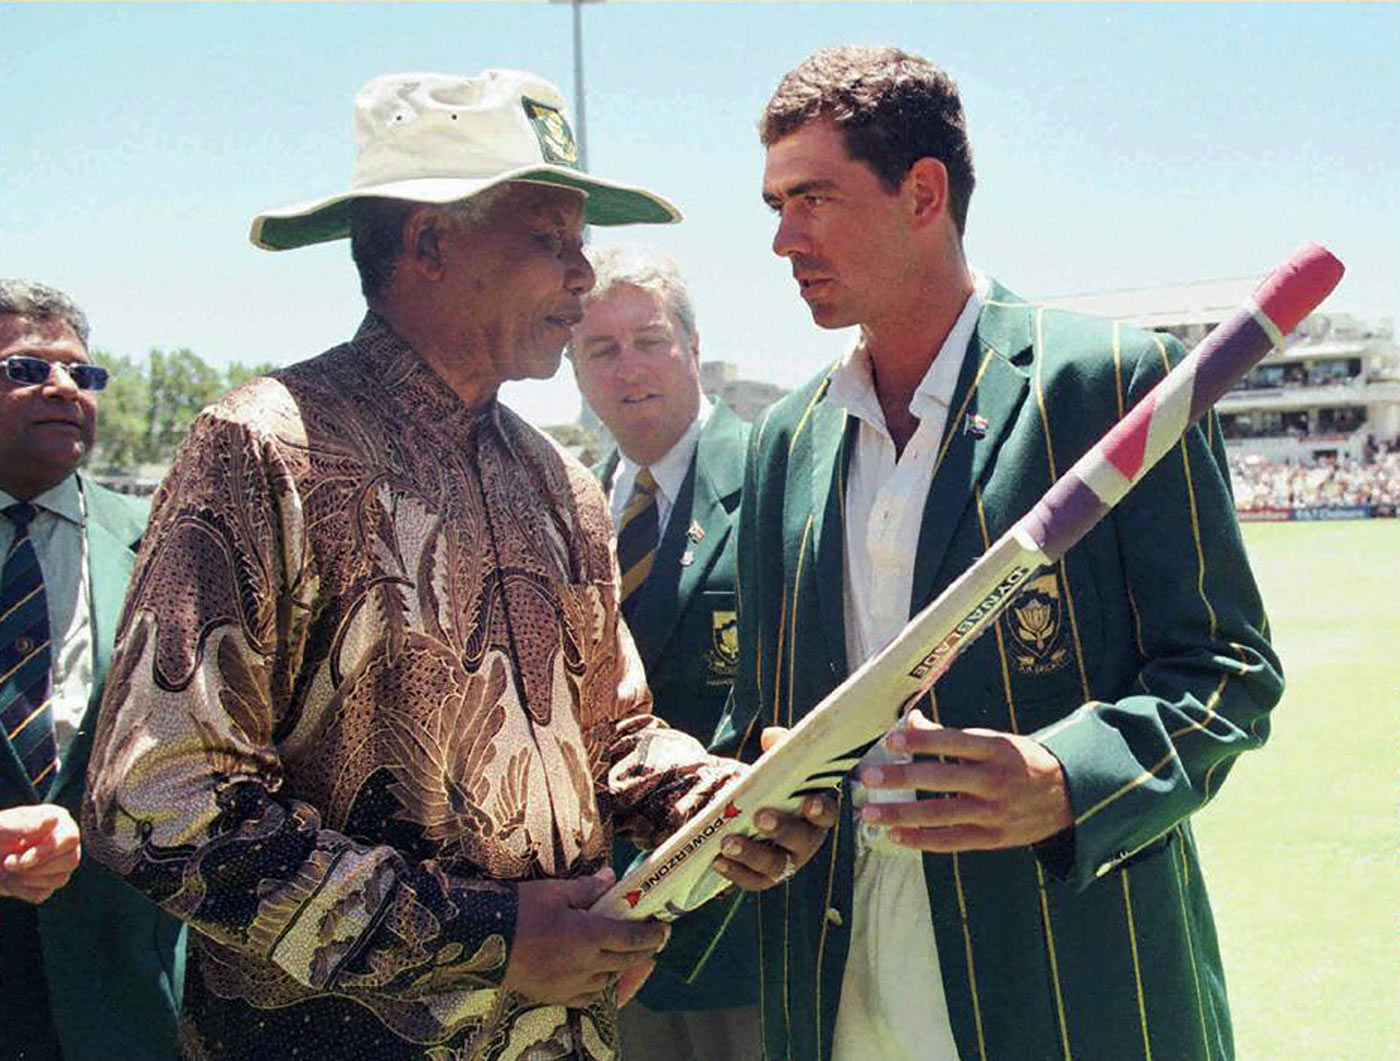 Nelson Mandela receives a cricket bat from Hansie Cronje